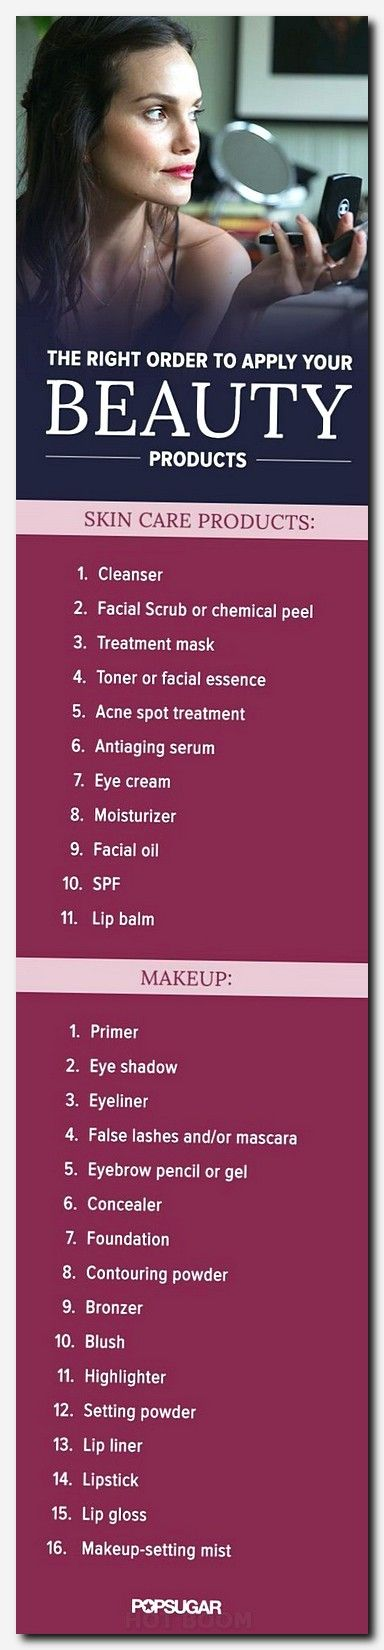 #skincare #skin #care what can prevent acne, natural ingredients for glowing skin,  fairness tips in hindi, why do i have sensitive skin, natural beauty day spa, always young skin care, sun damaged mole, healthy skin in winter, bath and body works, how to reduce pimples on face naturally, how to get rid of severe acne, how to stop coming pimples, winter season skin care tips in hindi language, skin day spa, avoid acne, skin fungus pictures